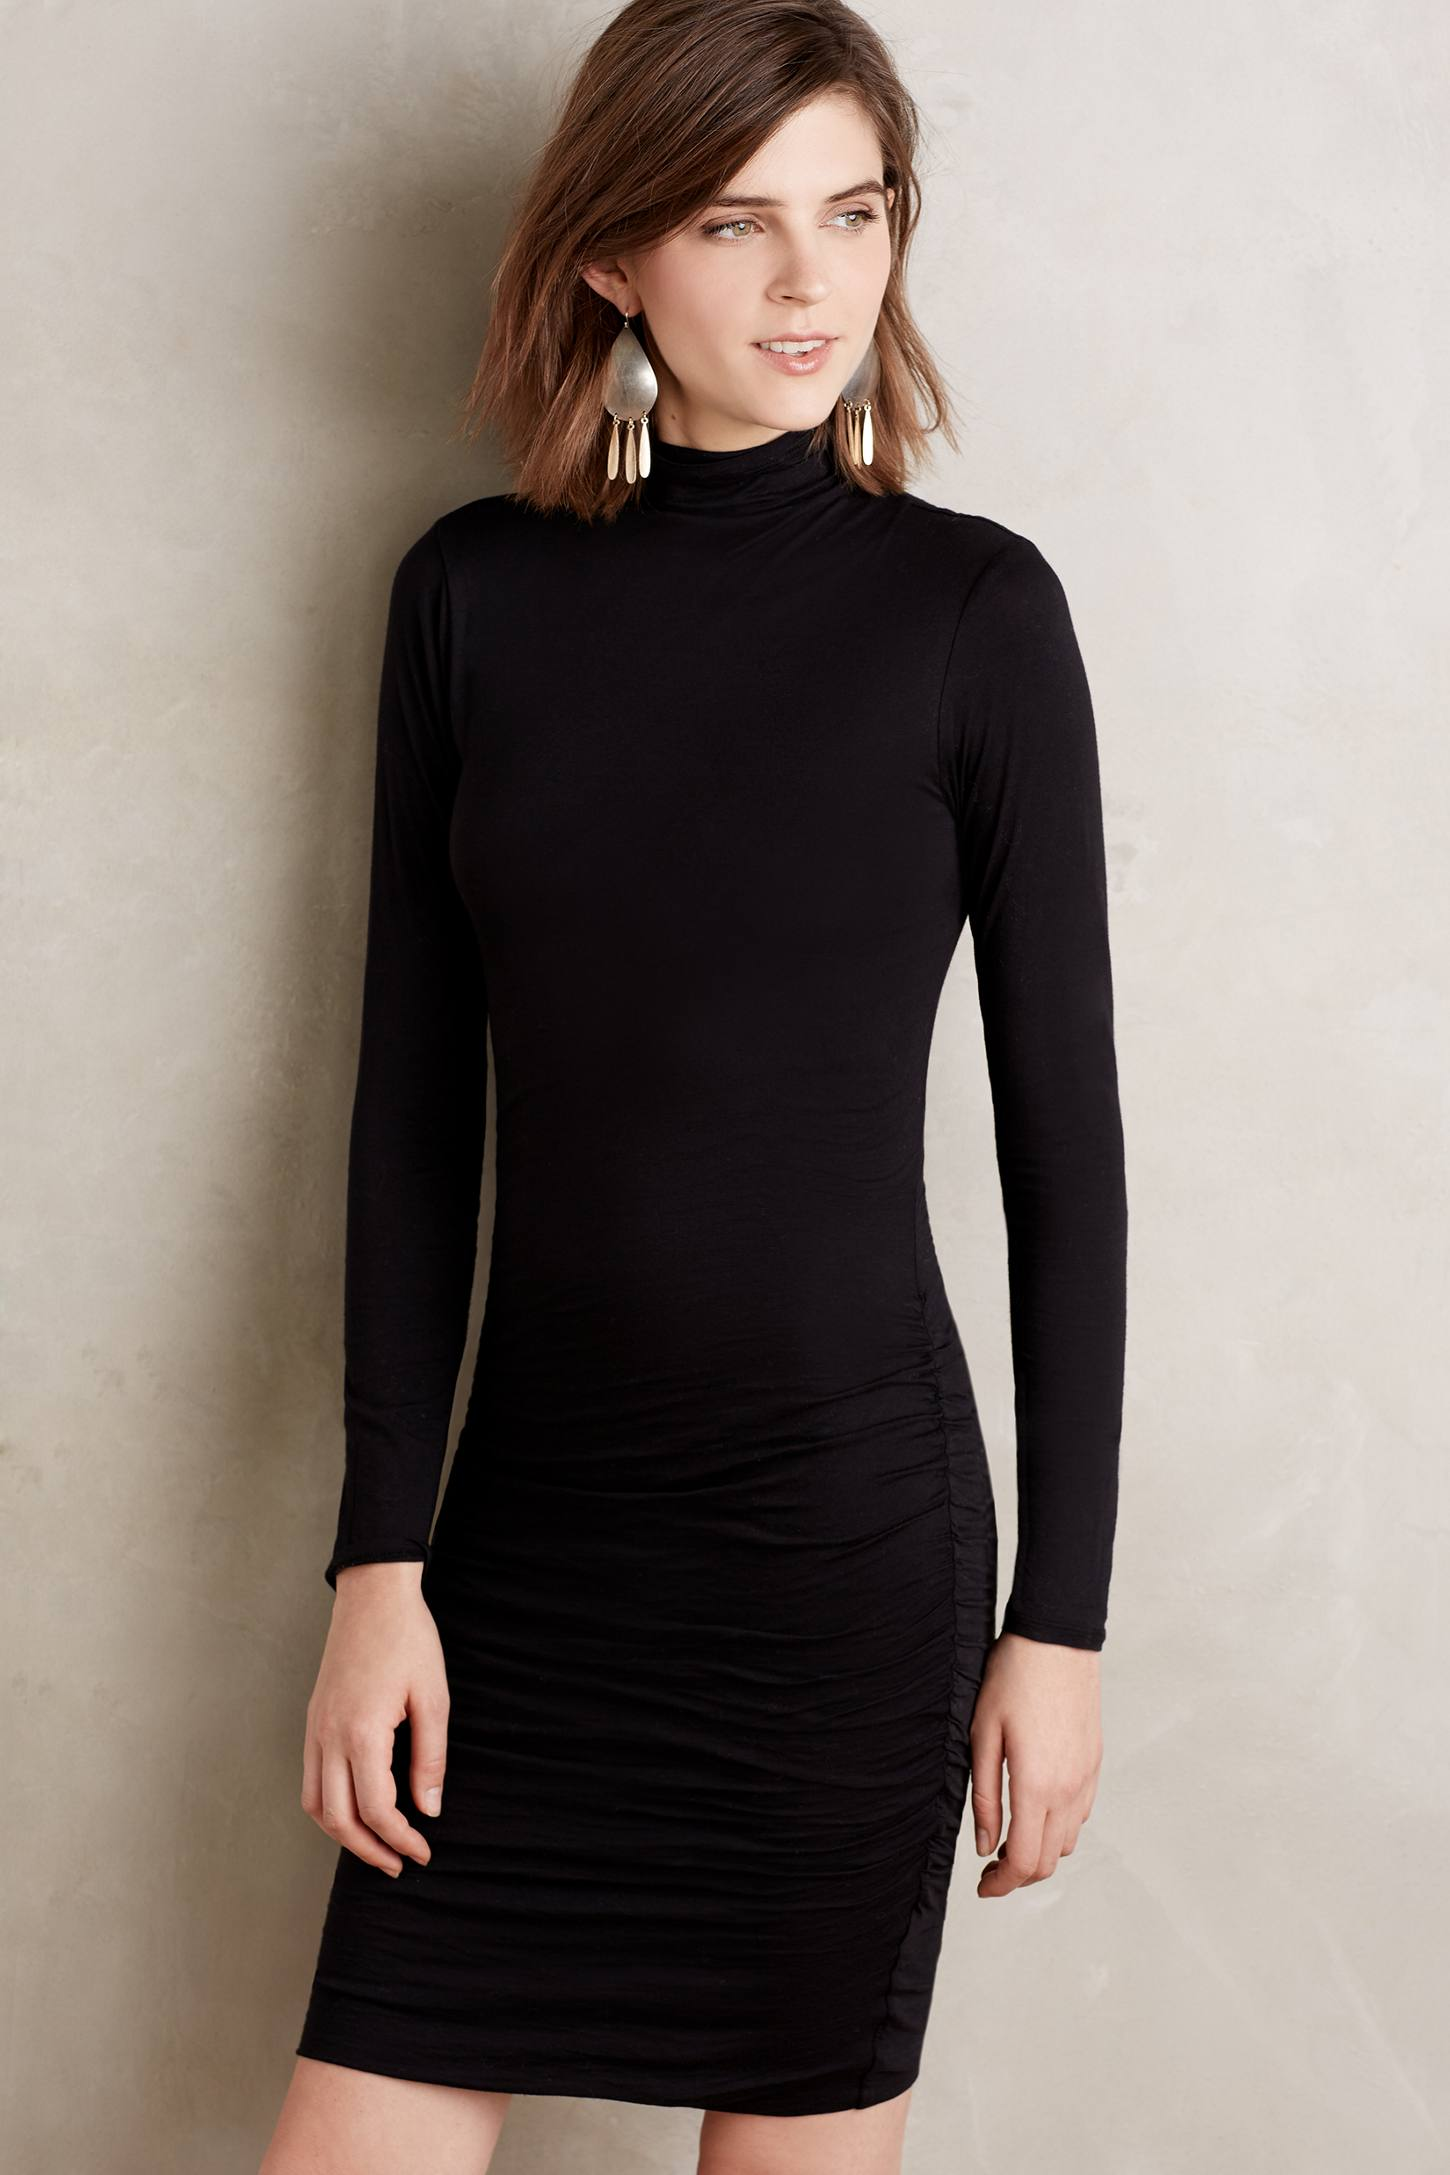 Adair Turtleneck Dress